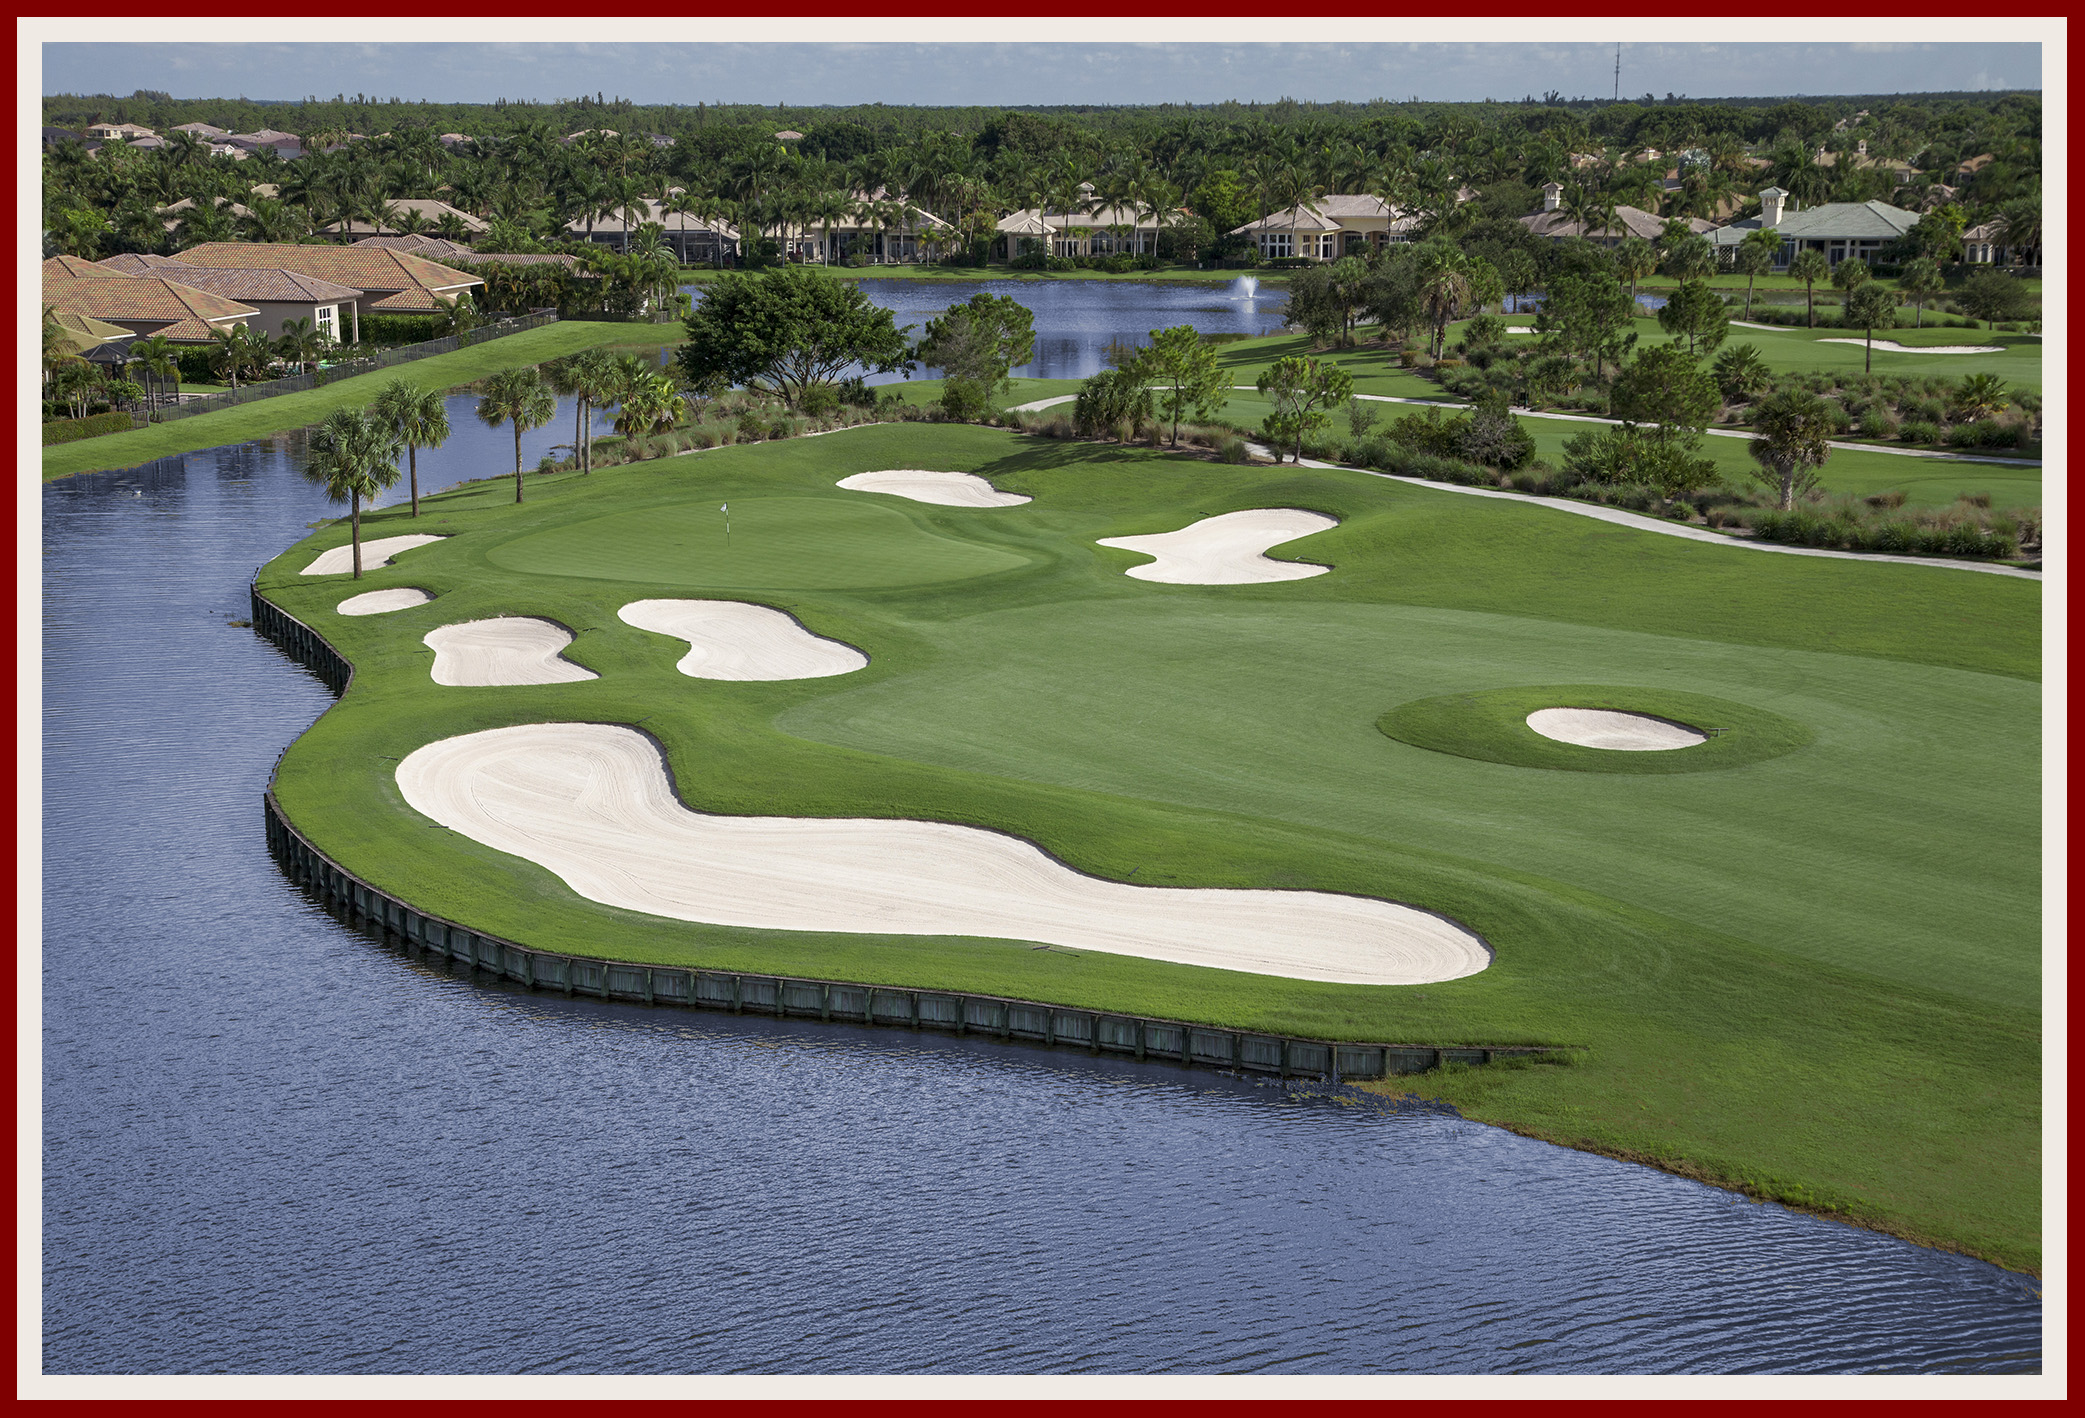 Ibis Golf and Country Club Homes For Sale Tradition Golfcourse